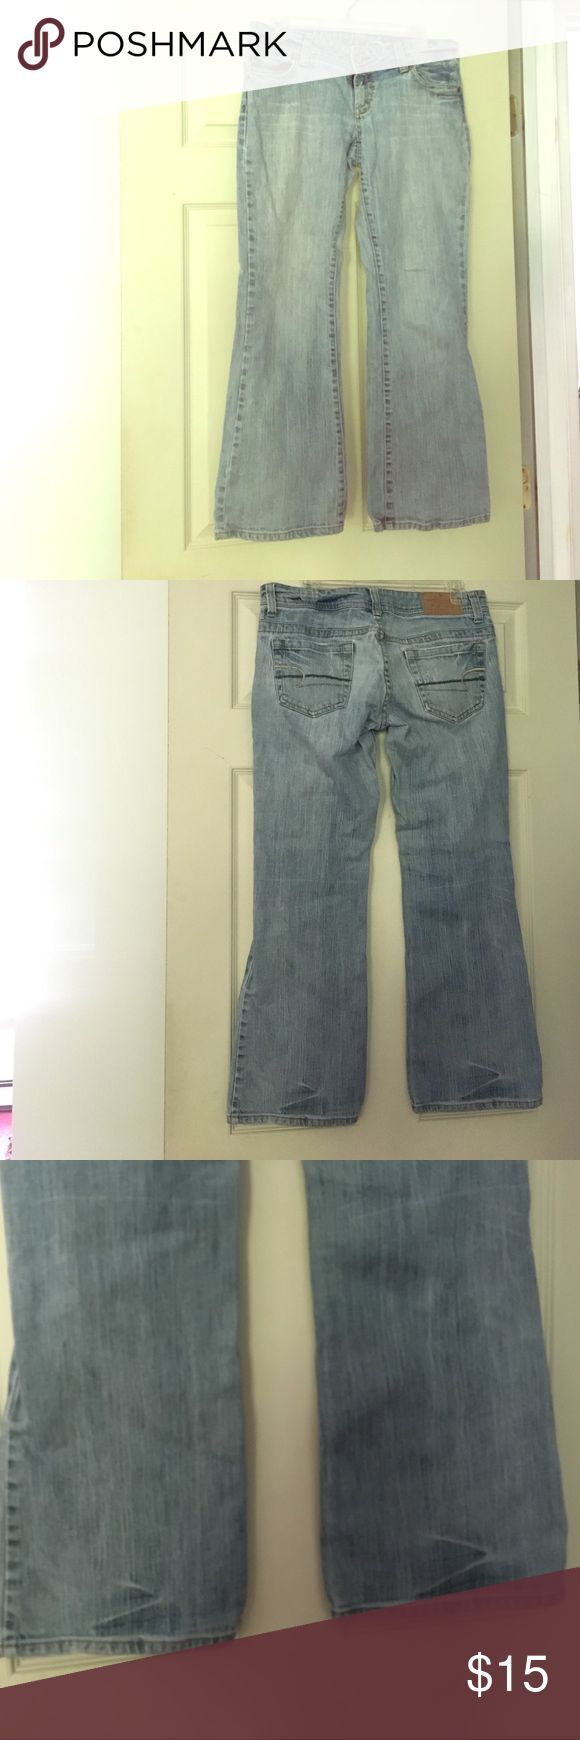 """American Eagle Jeans """"Artist"""" Worn but still has life. Size 8 """"Short"""". Jean material a little thinned in the crotch area but still intact- no holes! Bottoms are not torn American Eagle Outfitters Jeans Flare & Wide Leg"""